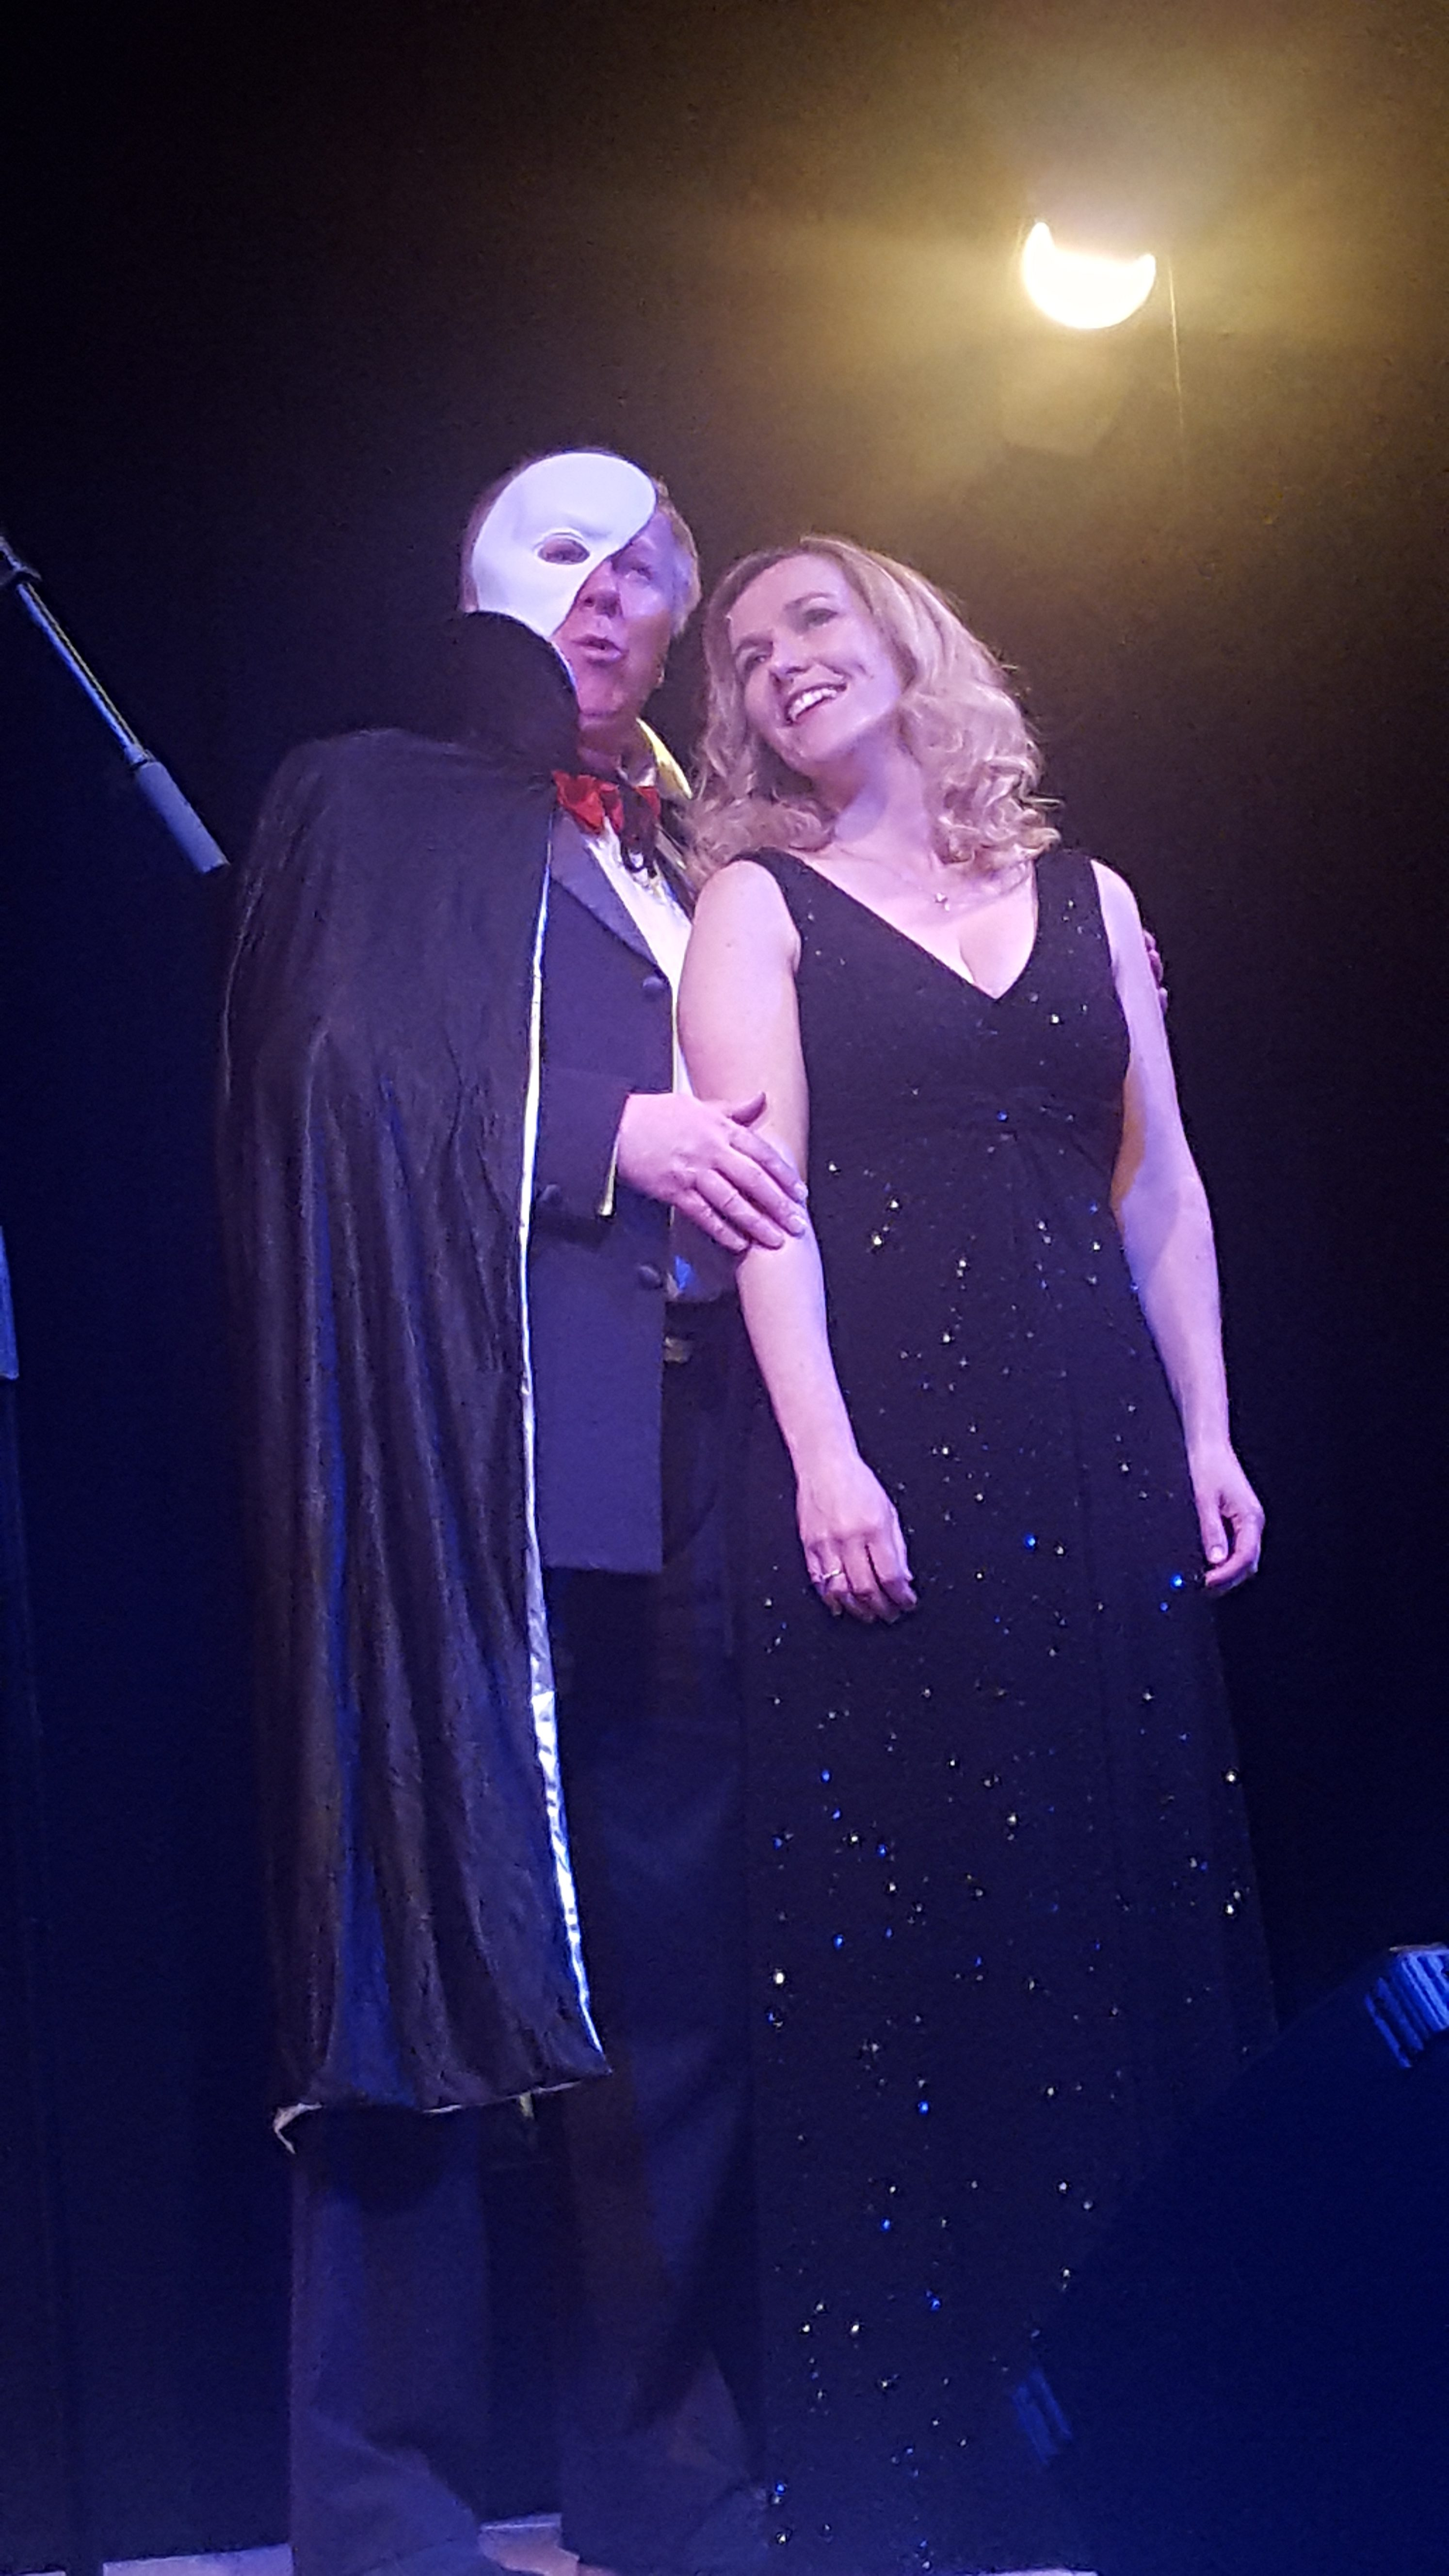 Richard Stark, Jill Neenan singing from Phantom of the Opera